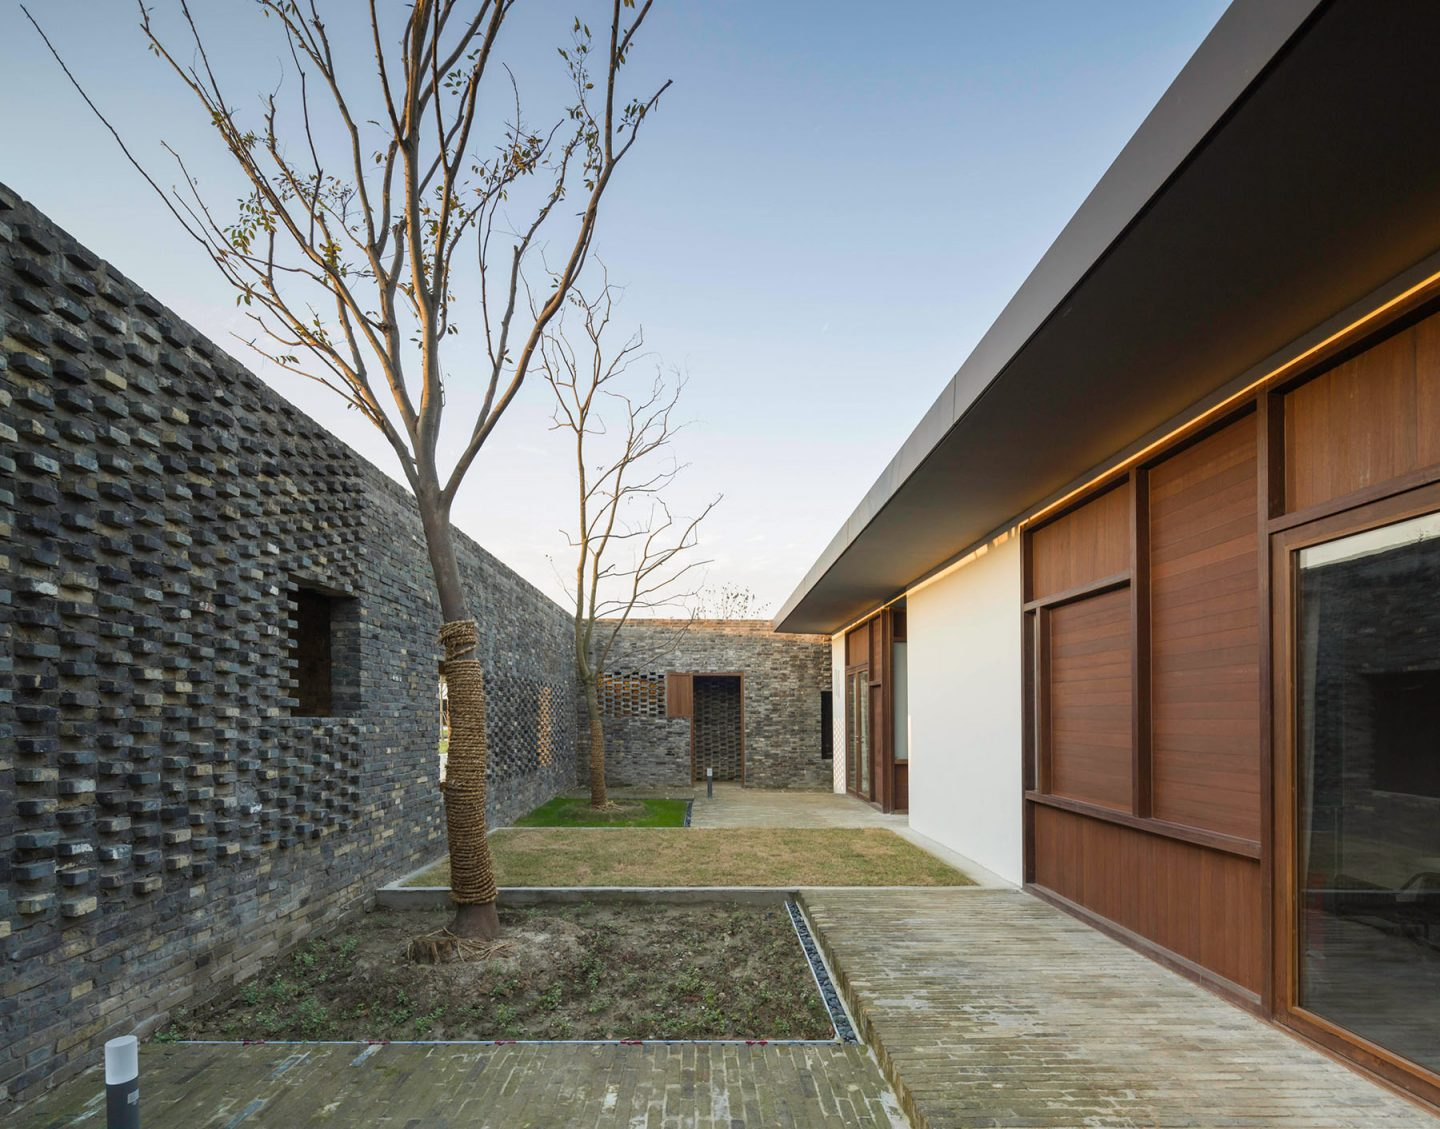 iGNANT-Architecture-Ner&Hu-Tsingpu-Yangzhou-Retreat--12